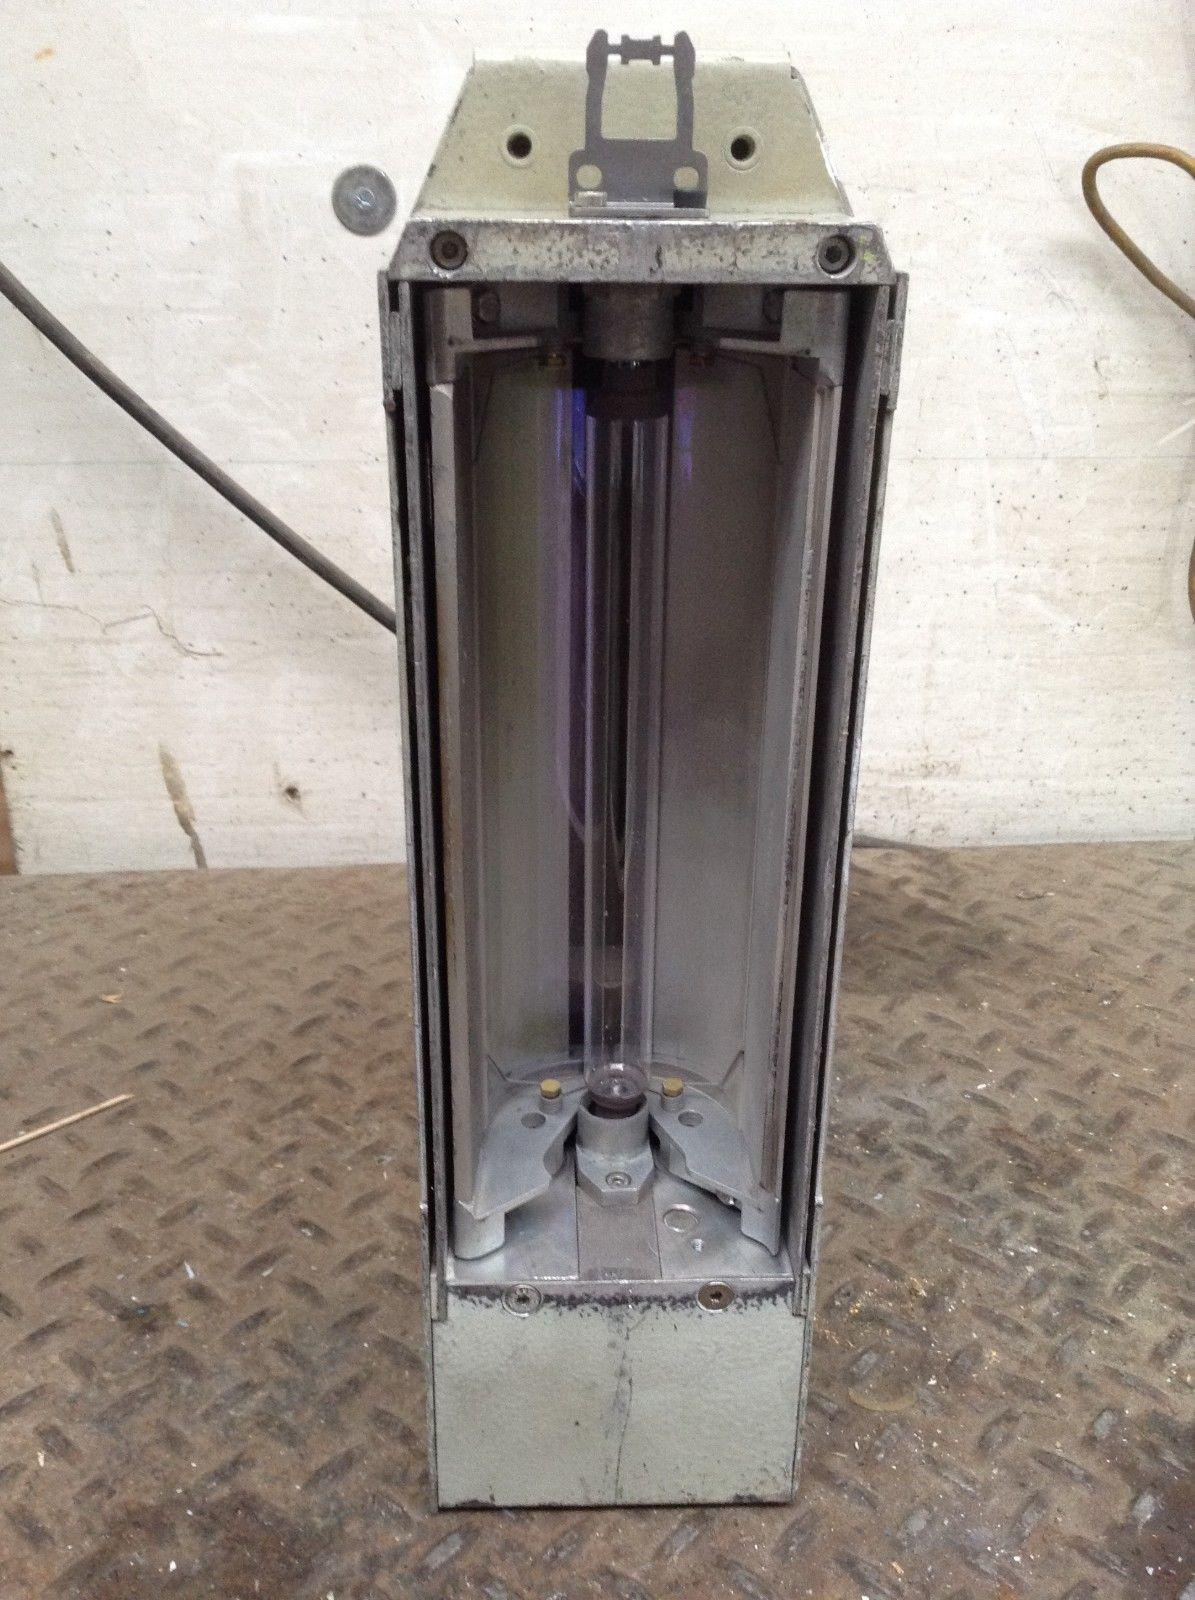 Werner Kammann Type K-Tronik UV20DFG11CO UV Lamp/Light Housing 180-420nm